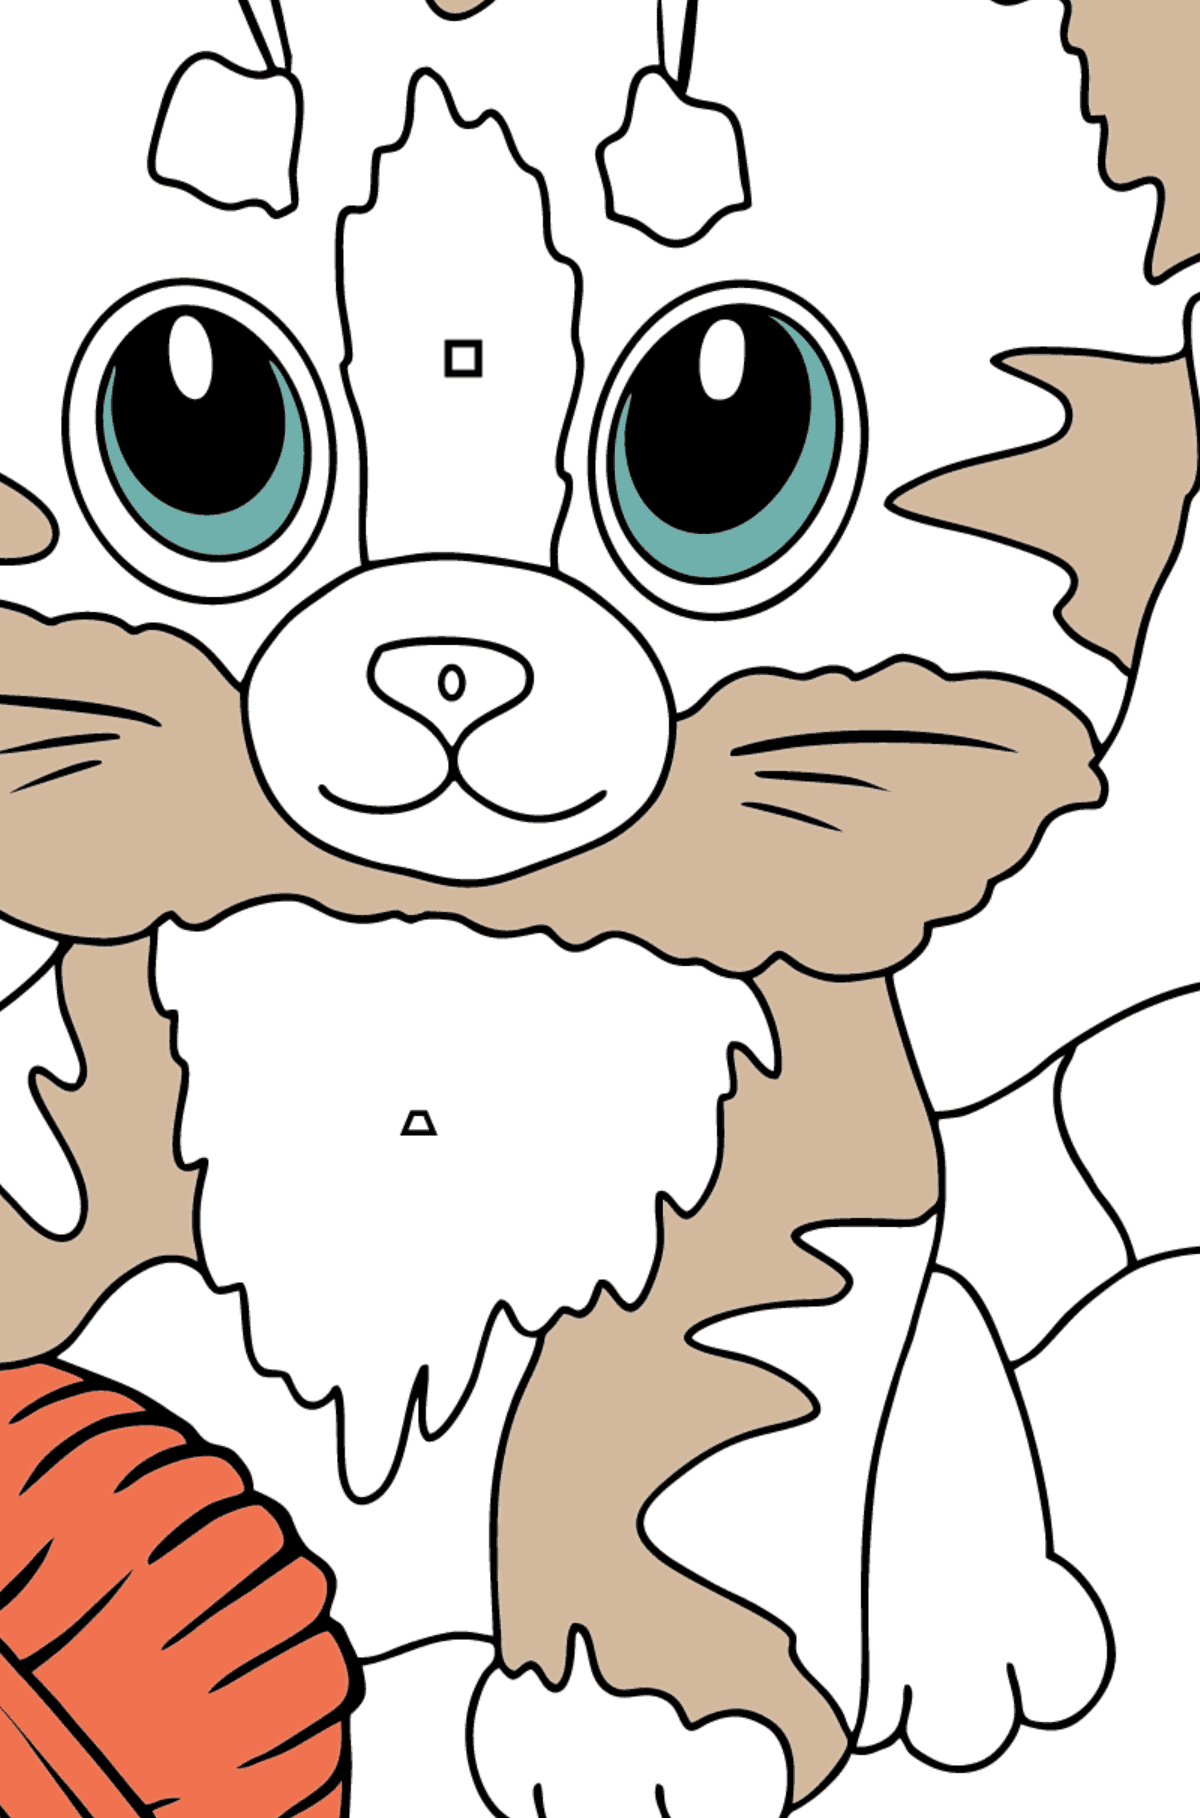 Coloring Page - a Kitten has Caught a Ball of Yarn - Coloring by Geometric Shapes for Kids